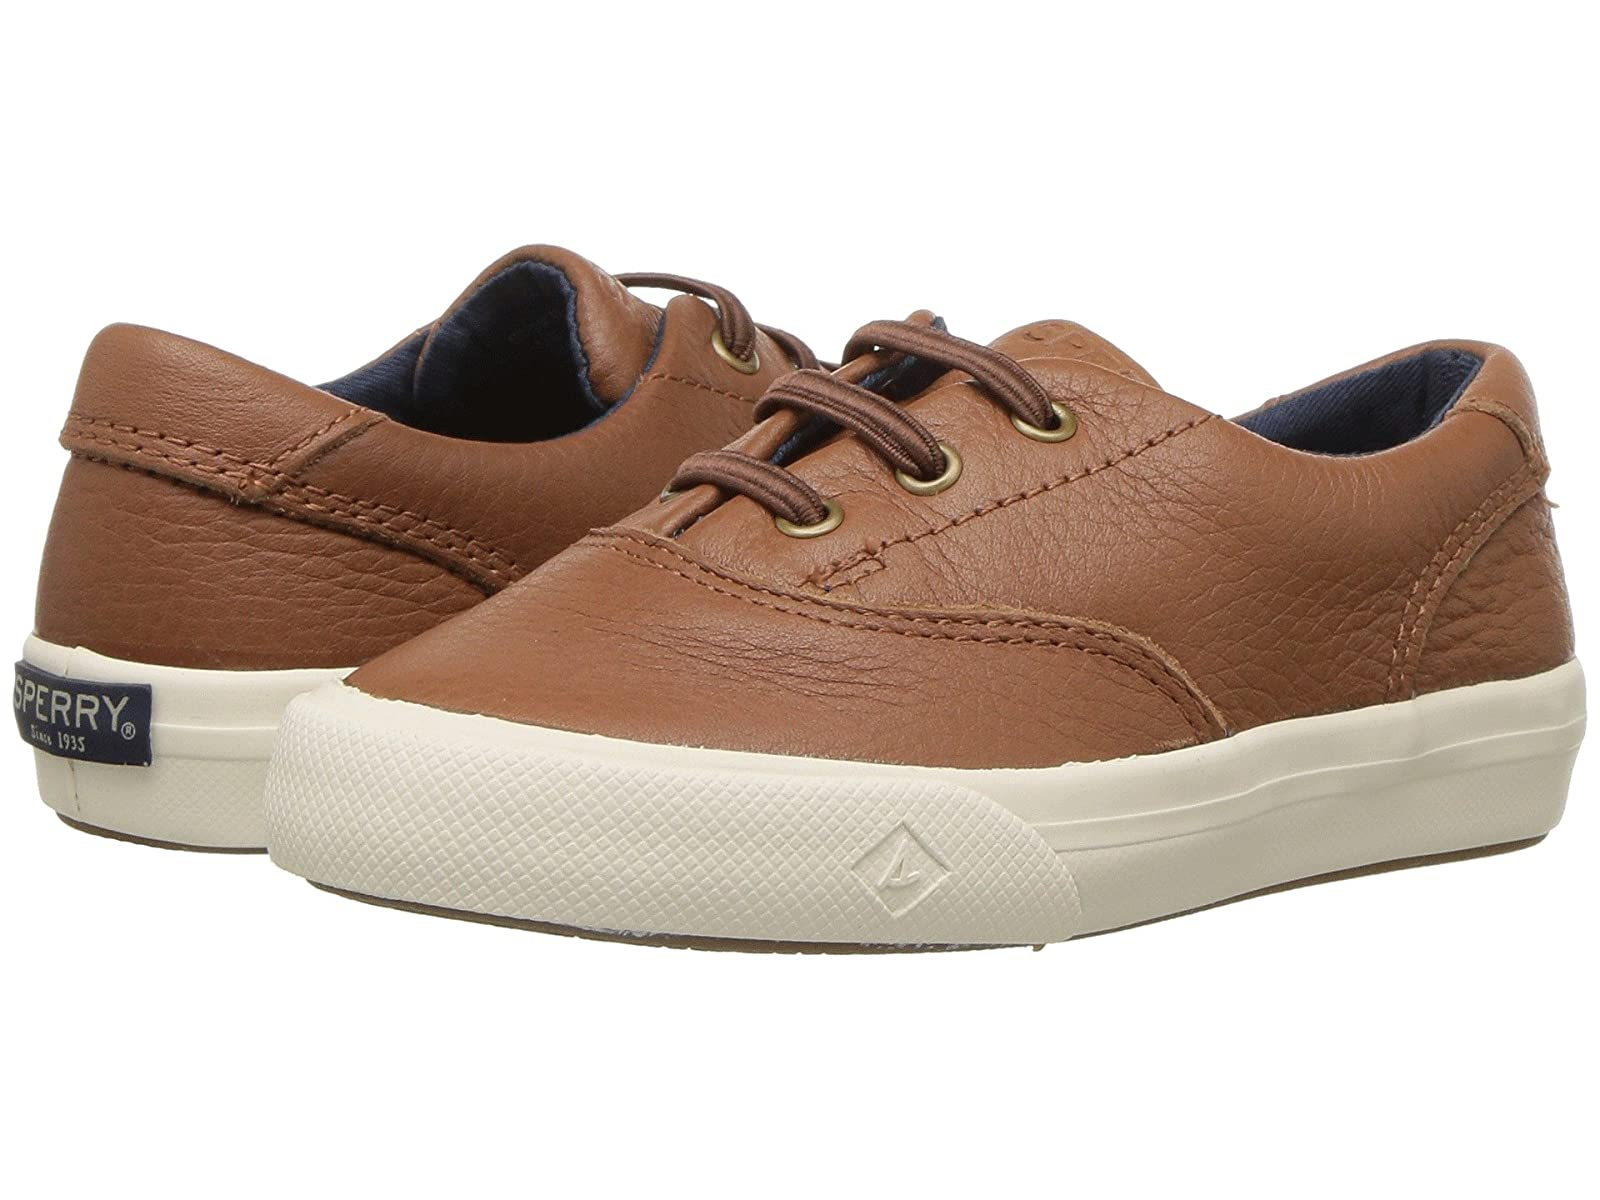 Sperry Kids Striper II Leather (Toddler/Little Kid)Atmospheric grades have affordable shoes